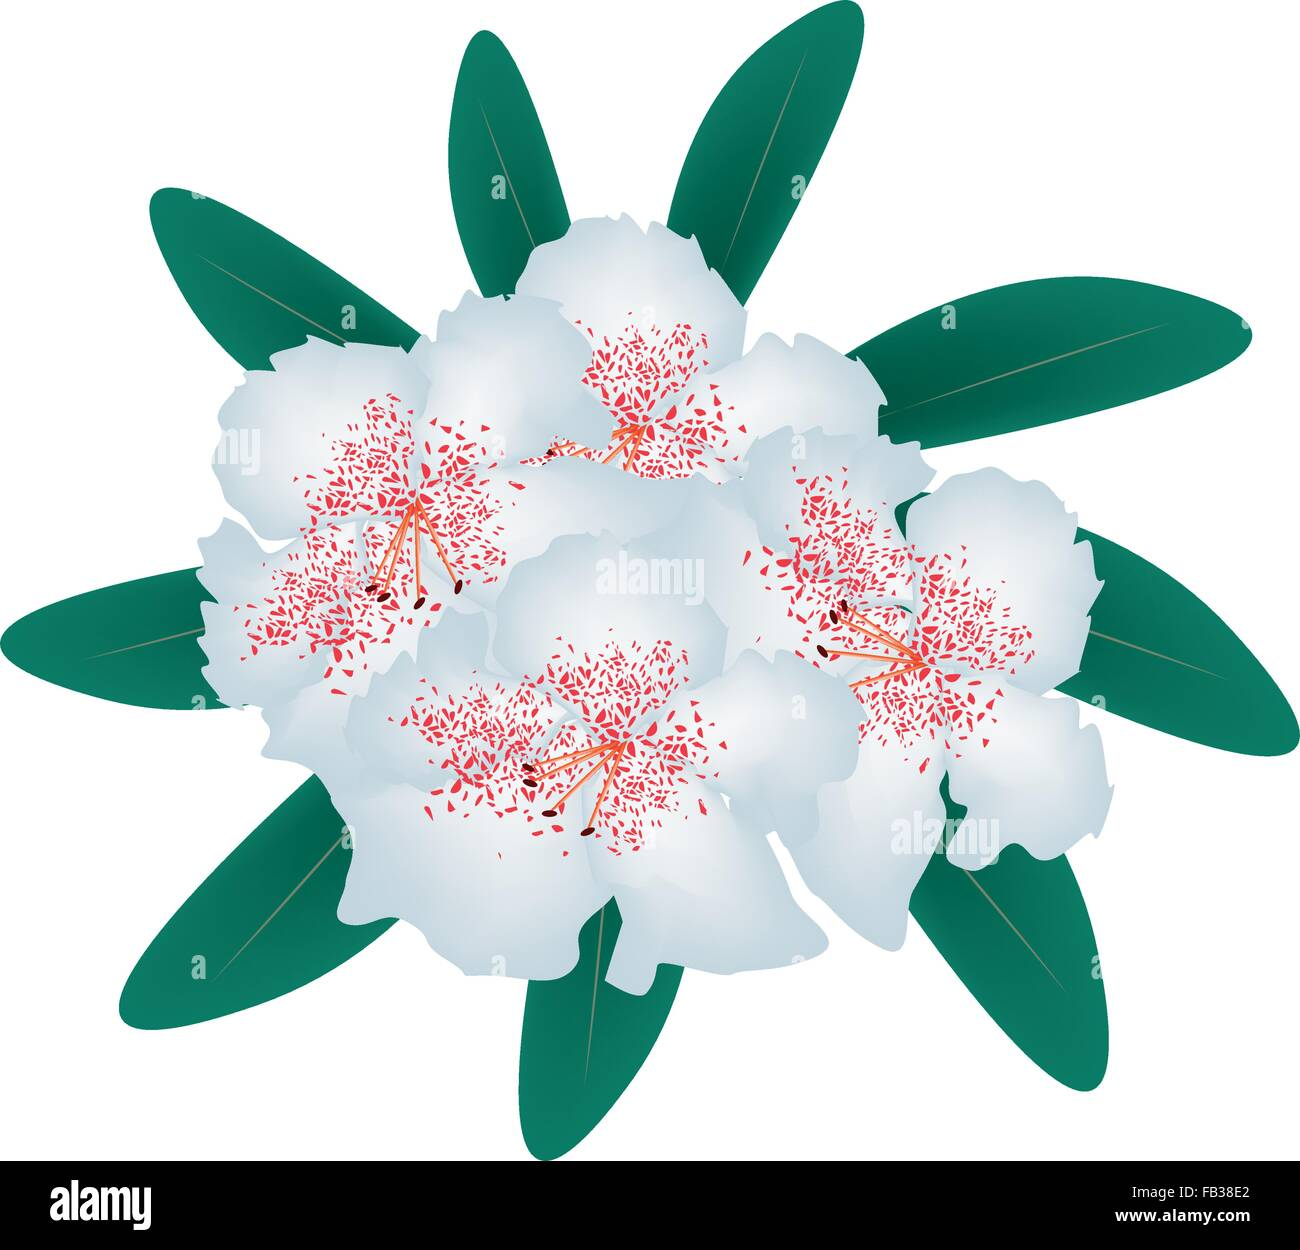 Beautiful Flower, Illustration of White Rhododendron Ponticum Flowers with Green Leaves Isolated on White Background. - Stock Vector